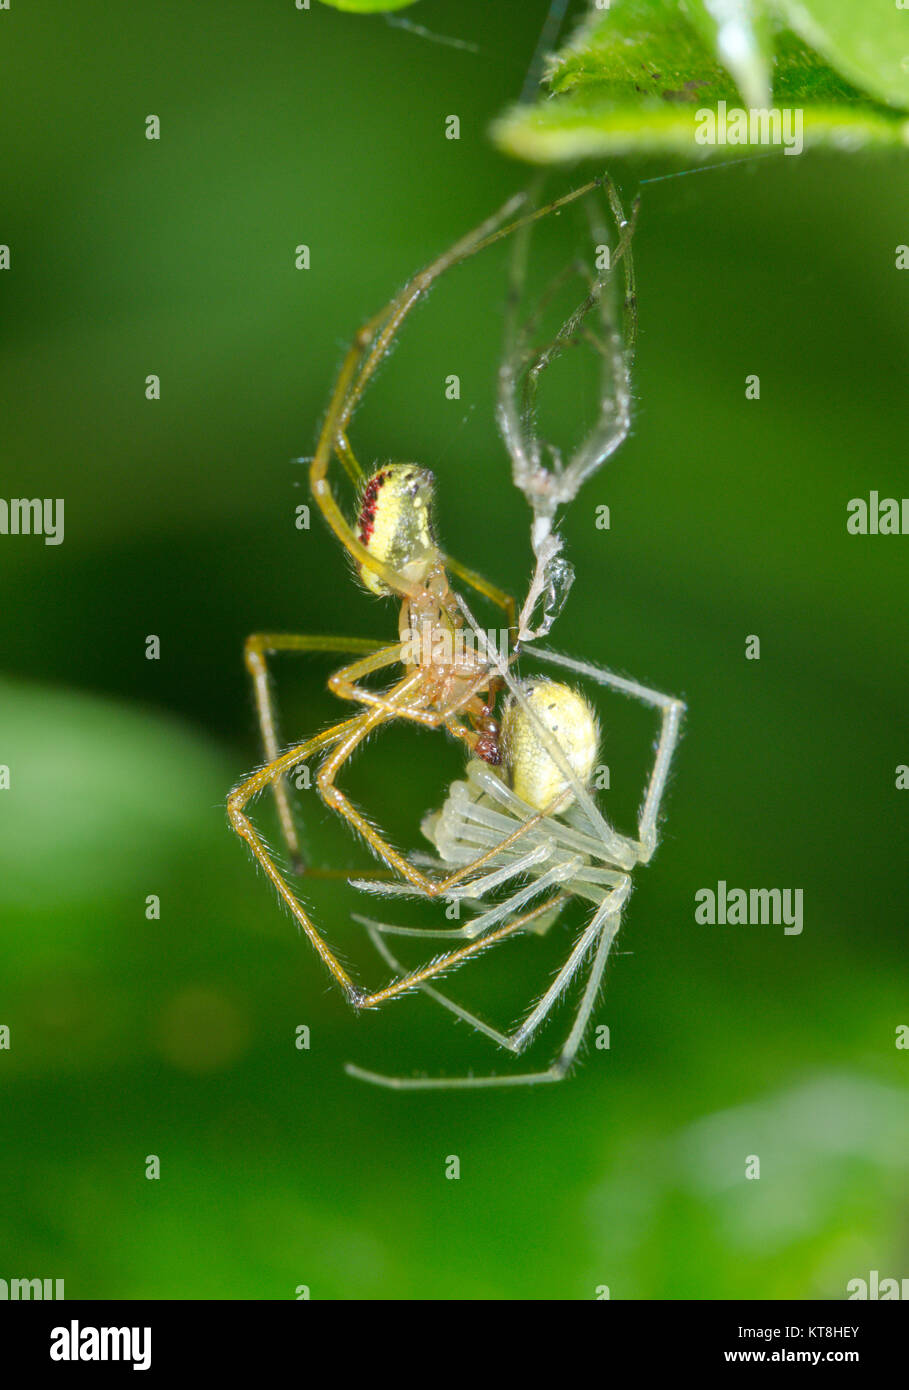 Candy striped Spider (Enoplognatha ovata - latimana) Mating pair of spiders 1 of 2. Sussex, UK - Stock Image